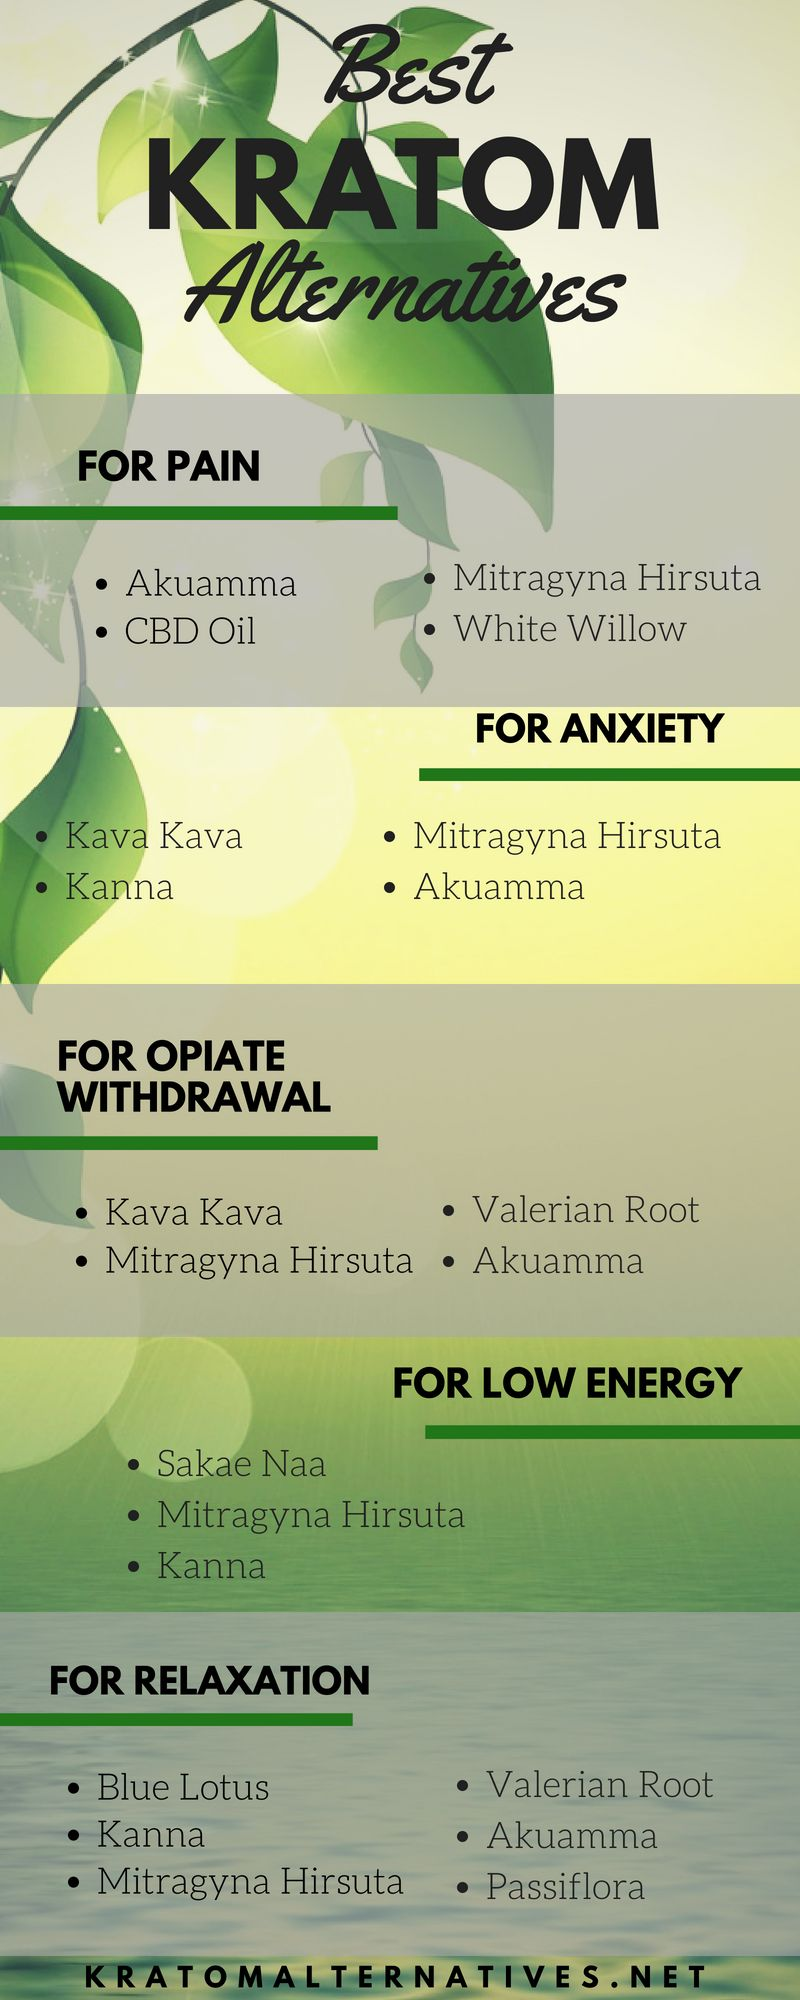 Best Kratom Alternatives For Pain Anxiety Opiate Withdrawal